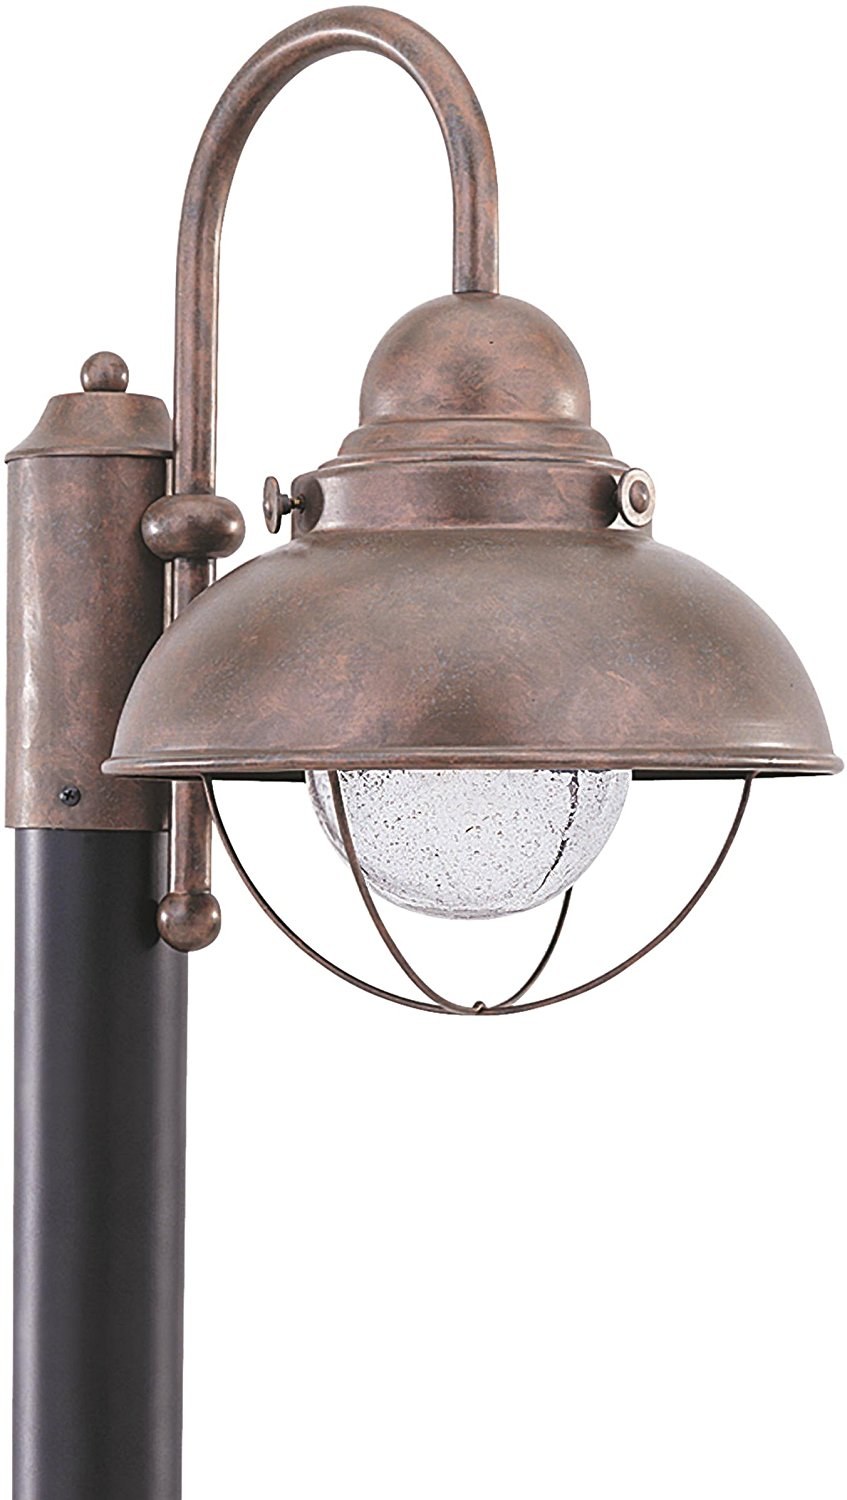 Sea Gull Lighting 826993S-44 Sebring Outdoor Post Mount, 1-Light LED 14 Watts, Weathered Copper